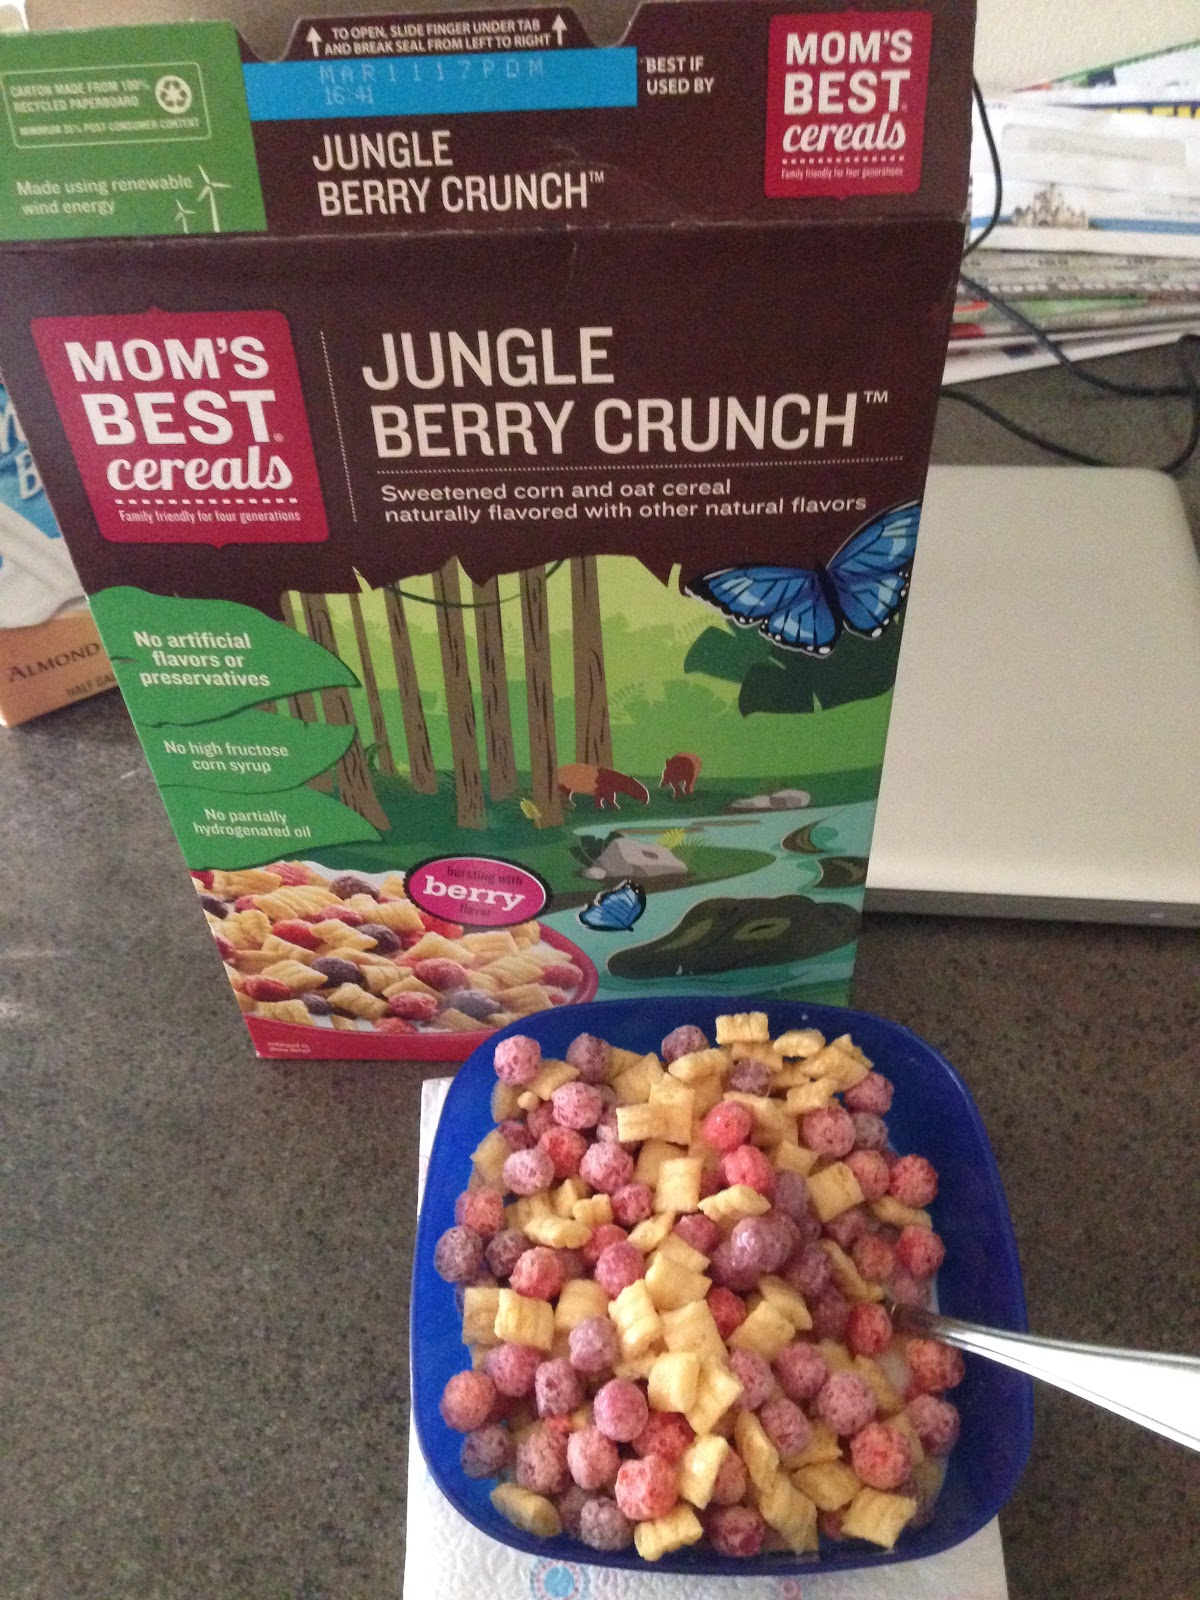 Moms Best On The Natural Side Mom S Best Cereals Jungle Berry Crunch You